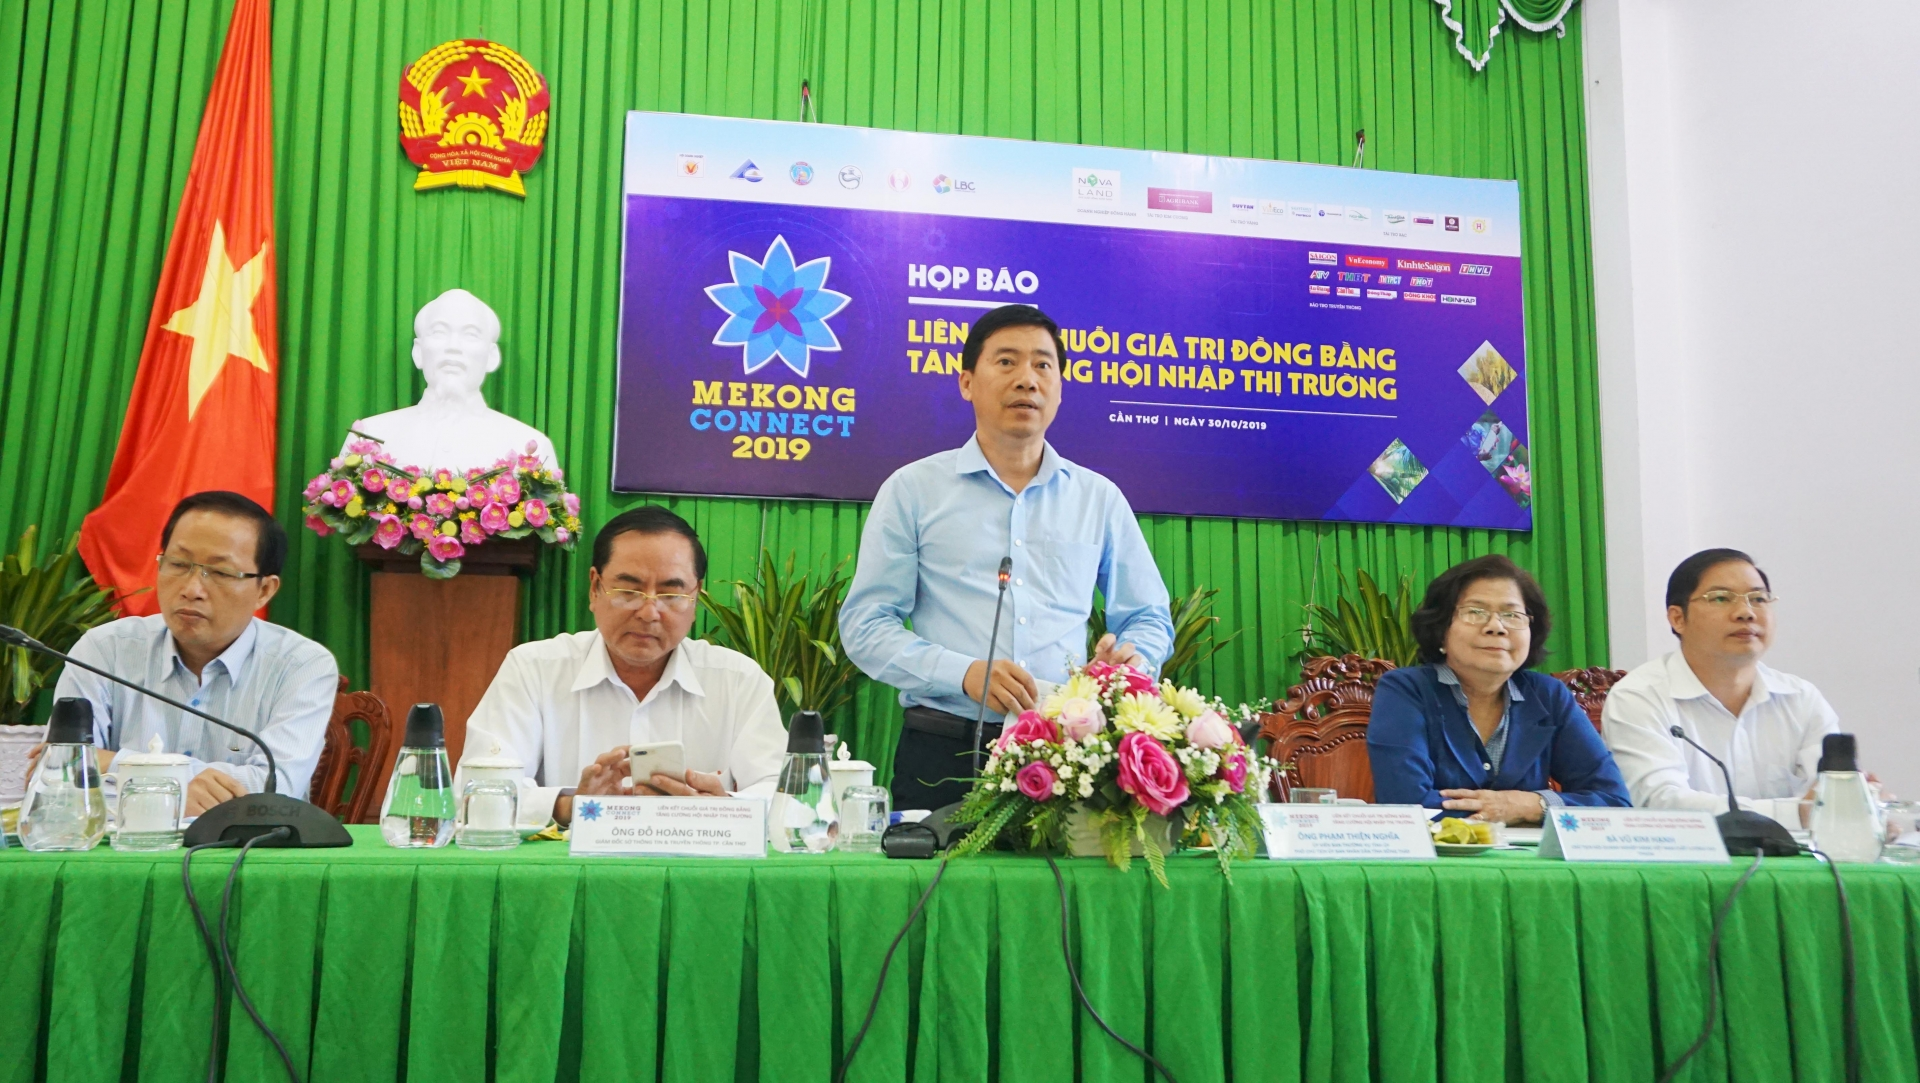 mekong connect 2019 ky vong thay doi tu duy ve nen nong nghiep